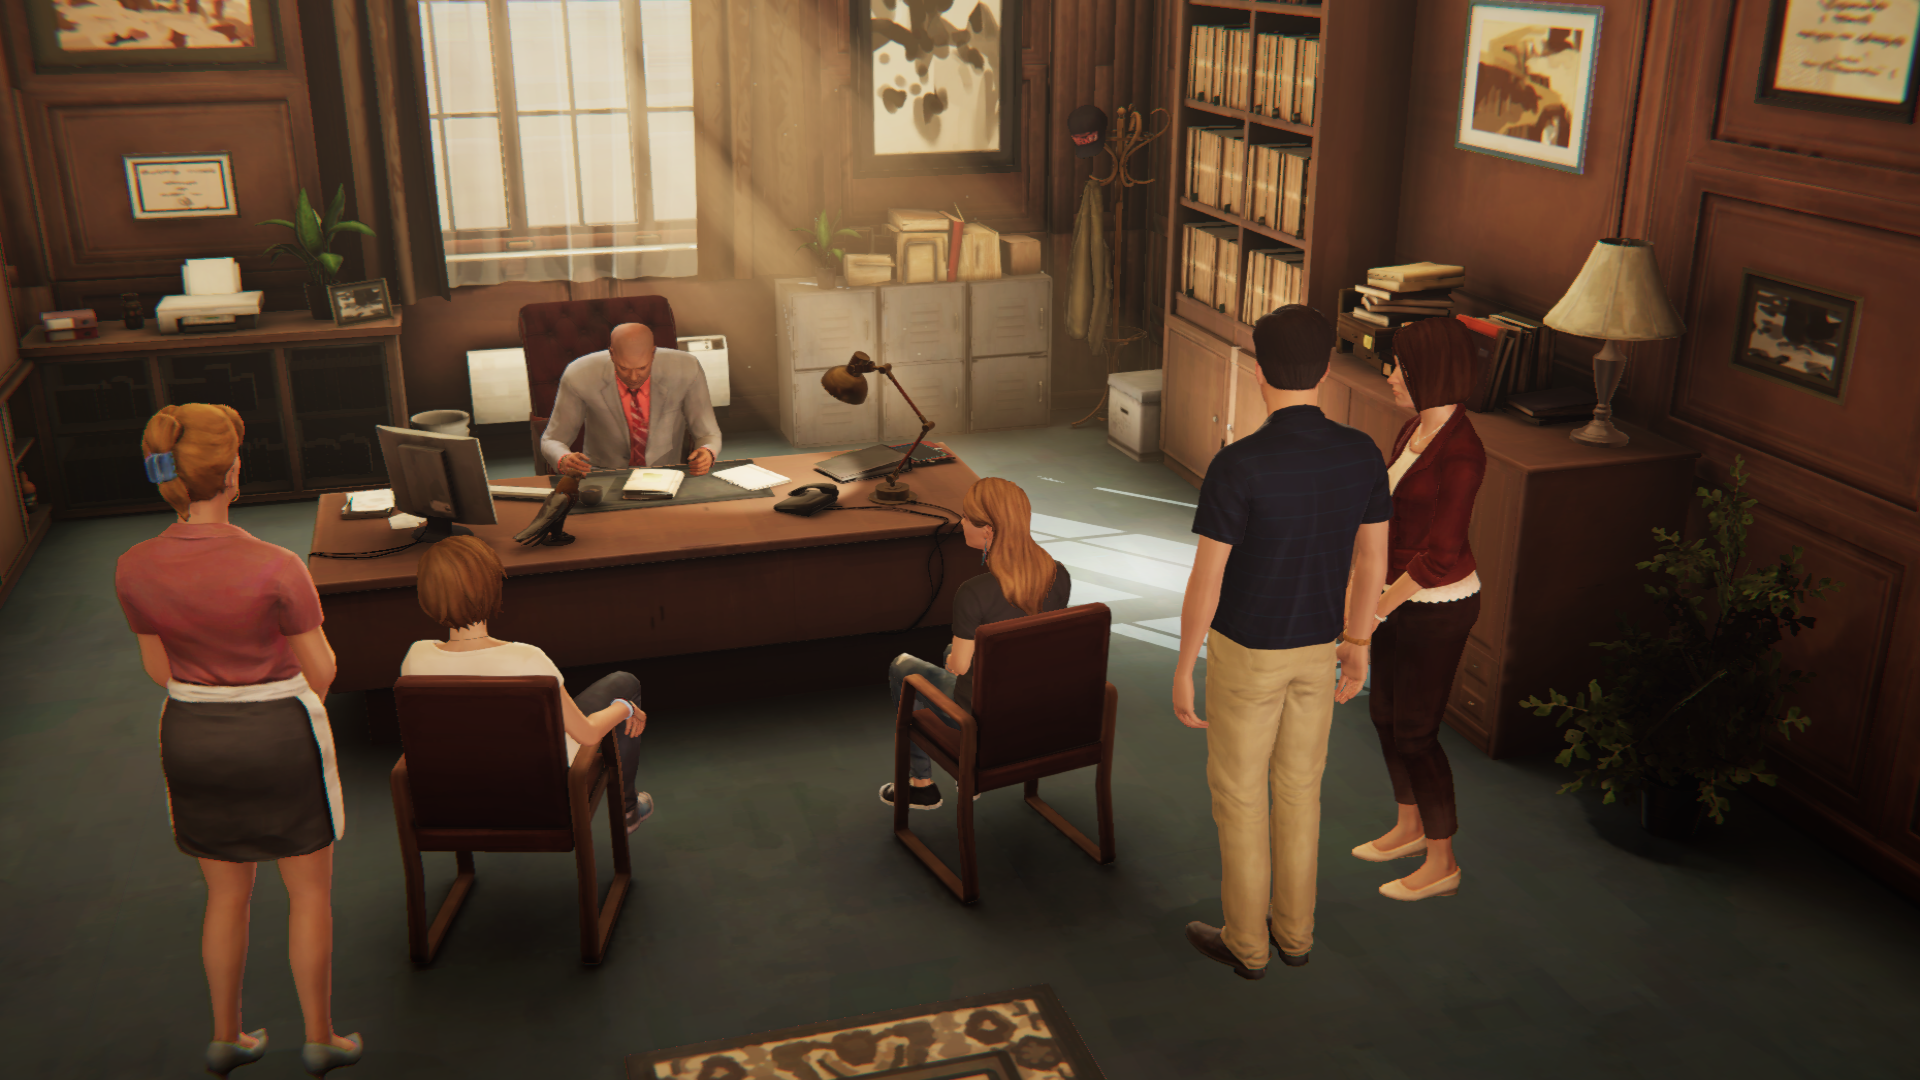 Chloe, Rachel, And Their Family Members Are Summoned To The Office,  Following The Girlsu0027 Skipping Of School The Previous Day. Principal Wells  Tells Chloe ...